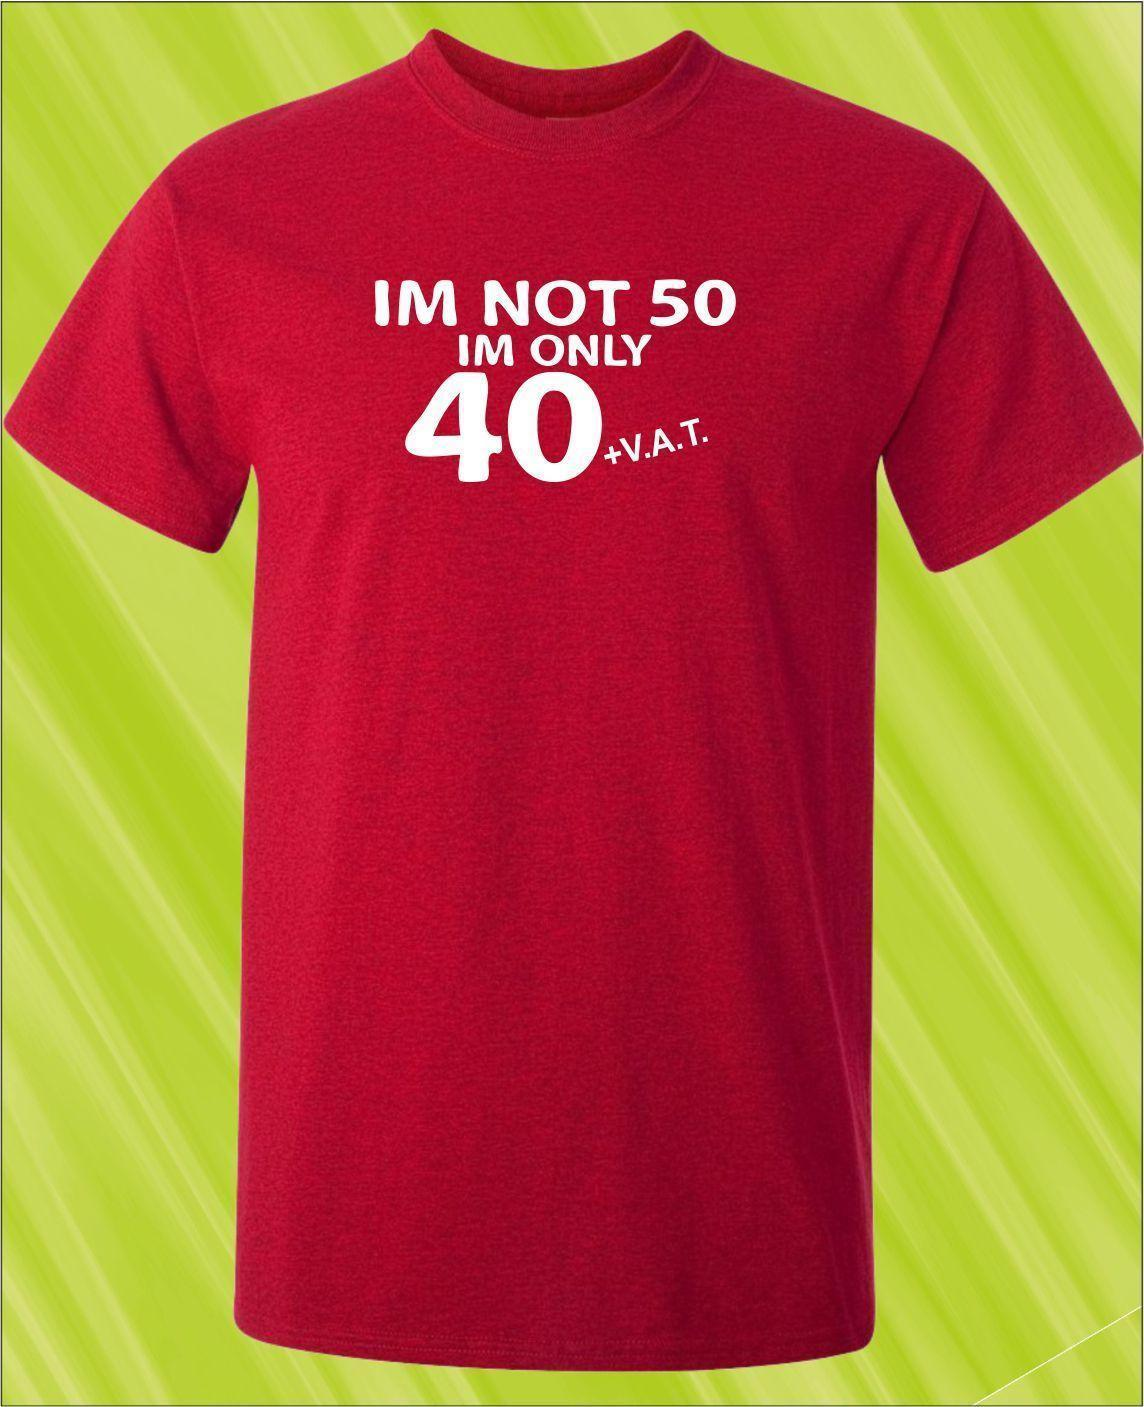 50th BIRTHDAY T Shirt IM Not 50 40 VAT Mens Womens All Ages Printed Gift Print Hip Hop Tee NEW ARRIVAL Cool Designs